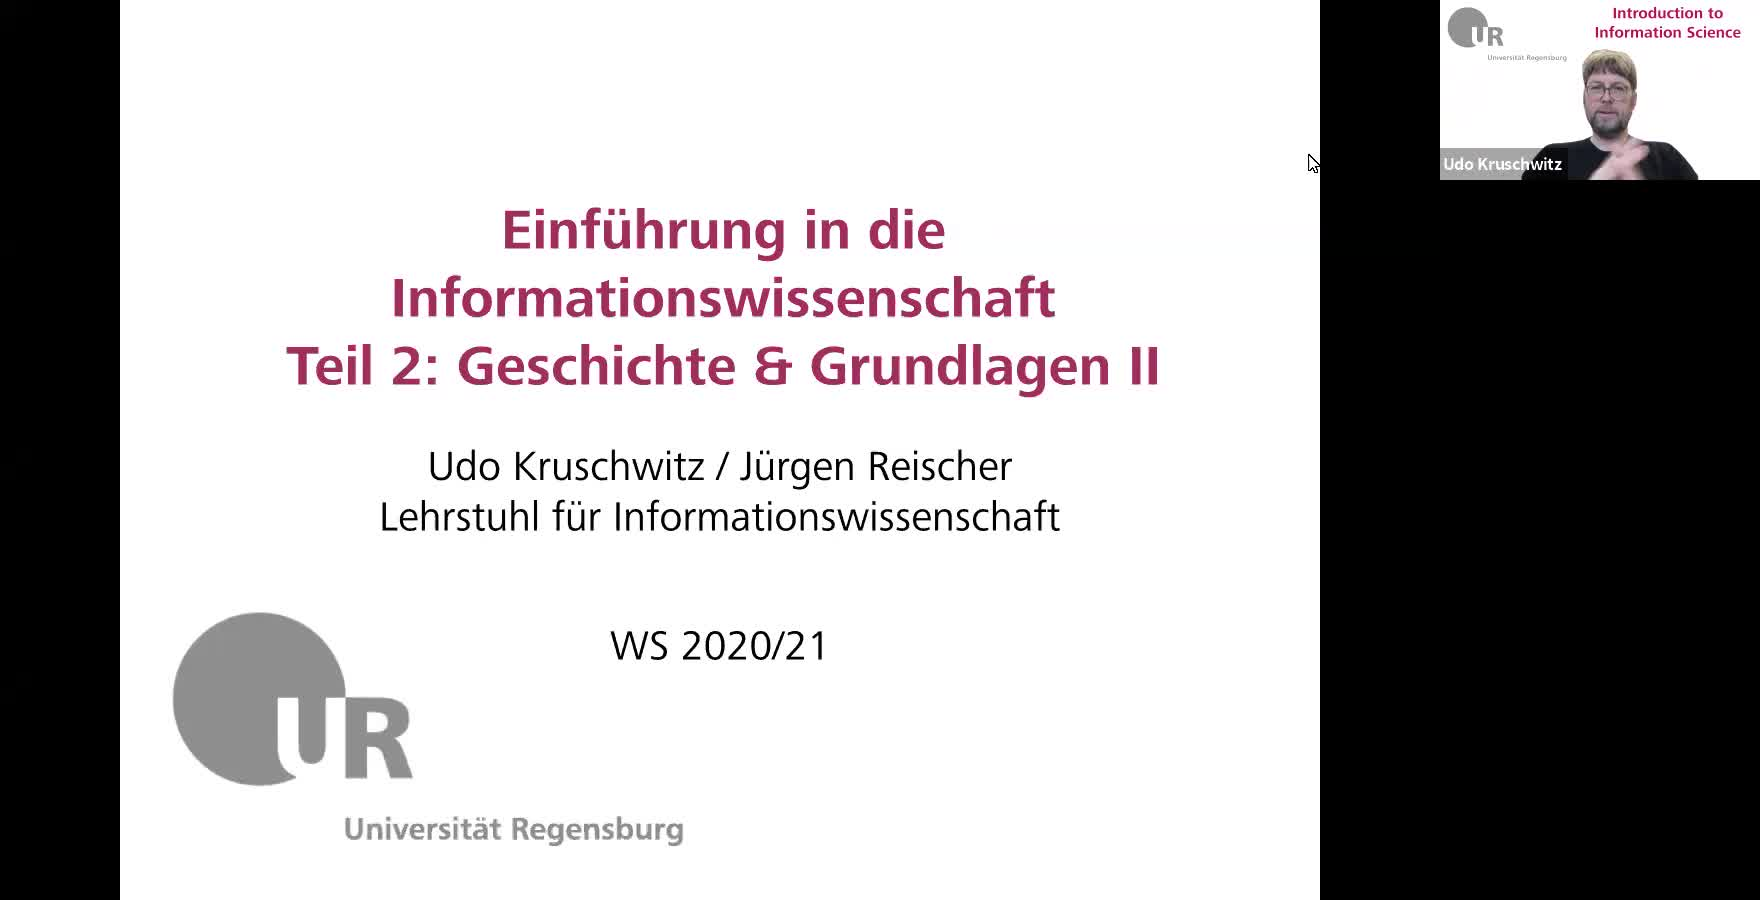 Introduction to Information Science - Lecture 3 (History and important concepts II)